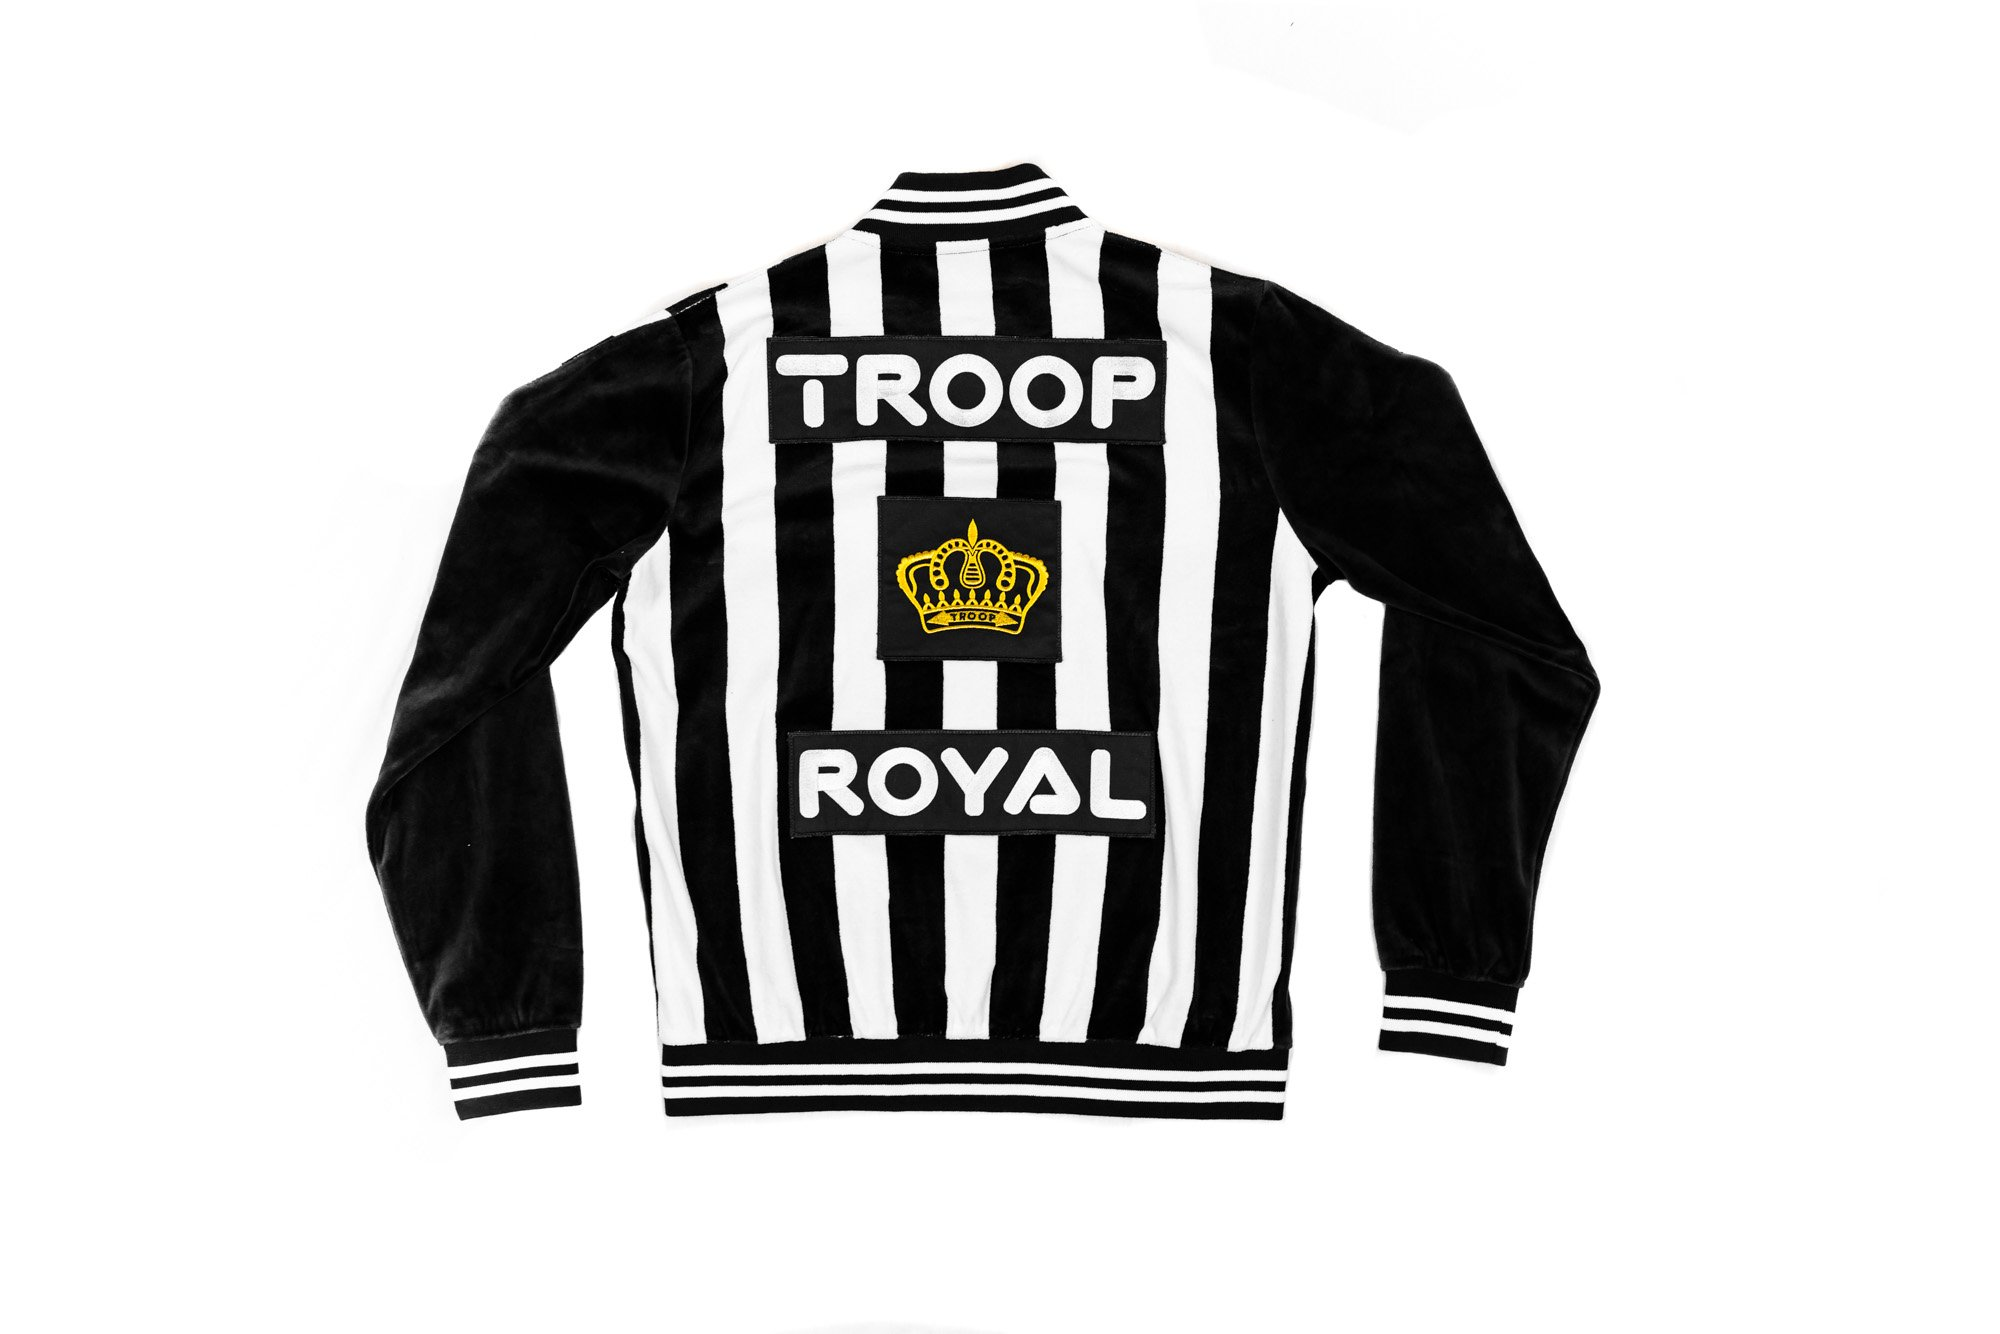 world of troop velour suit jacket